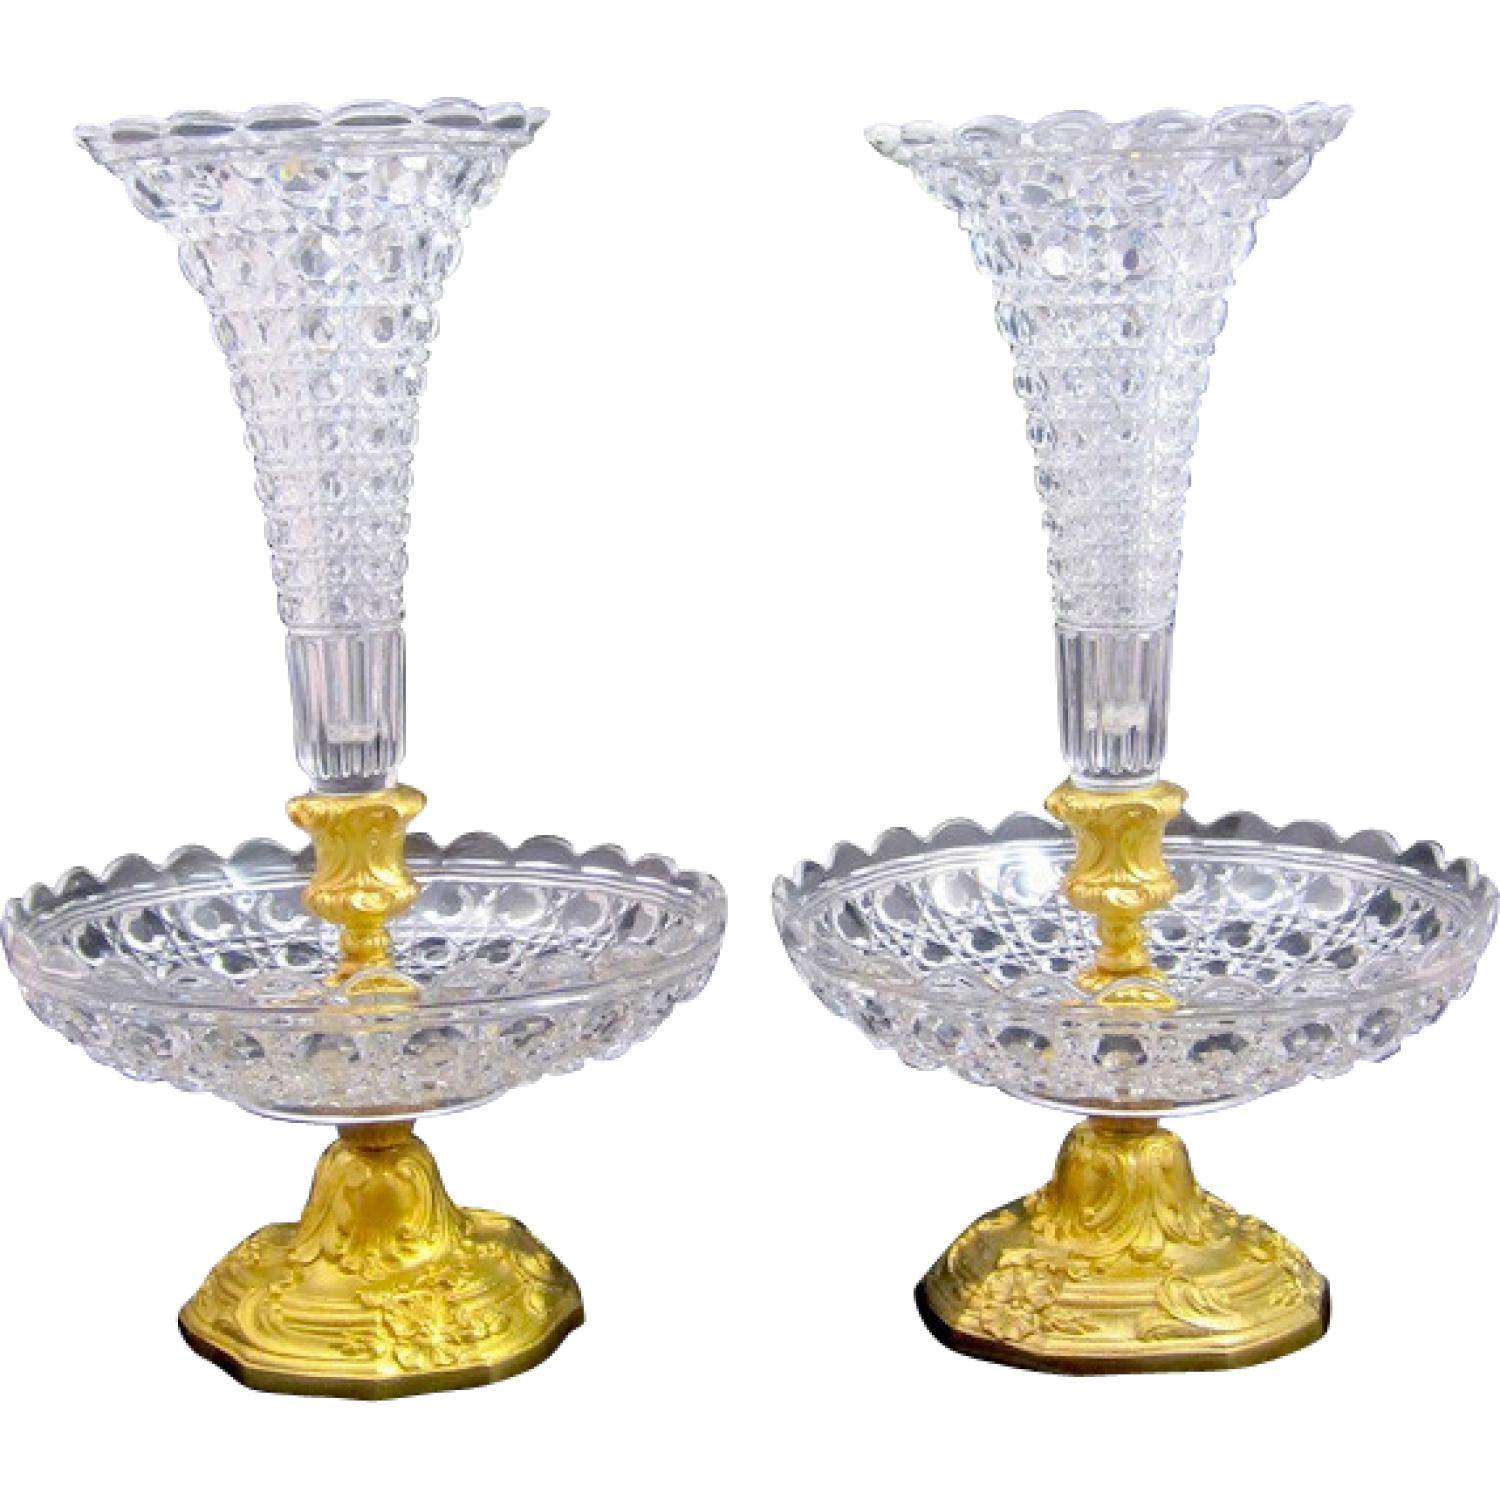 Antique Baccarat Glass Vases